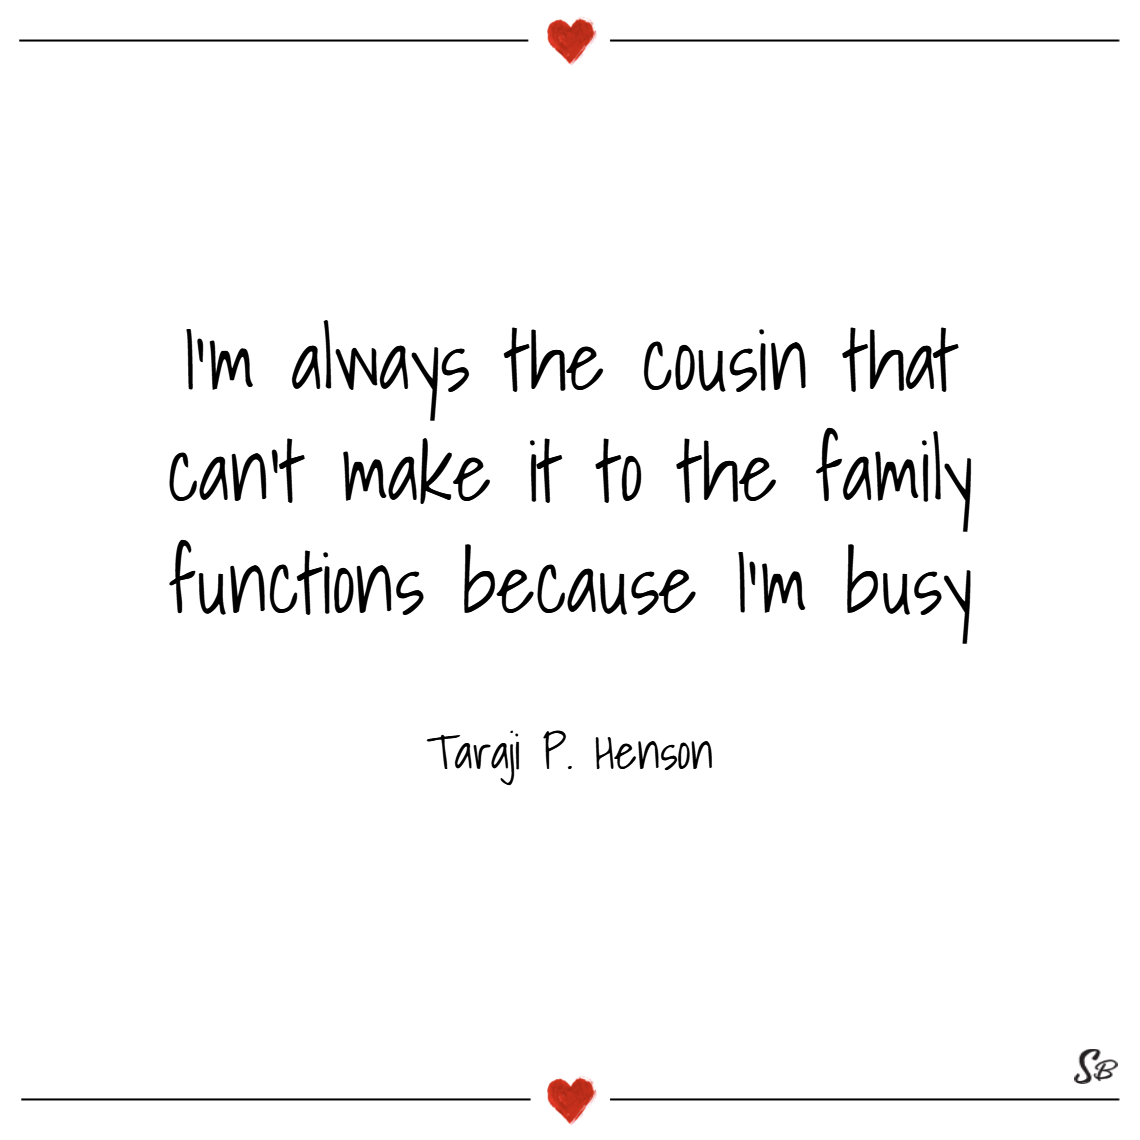 I'm always the cousin that can't make it to the family functions because i'm busy. – taraji p. henson